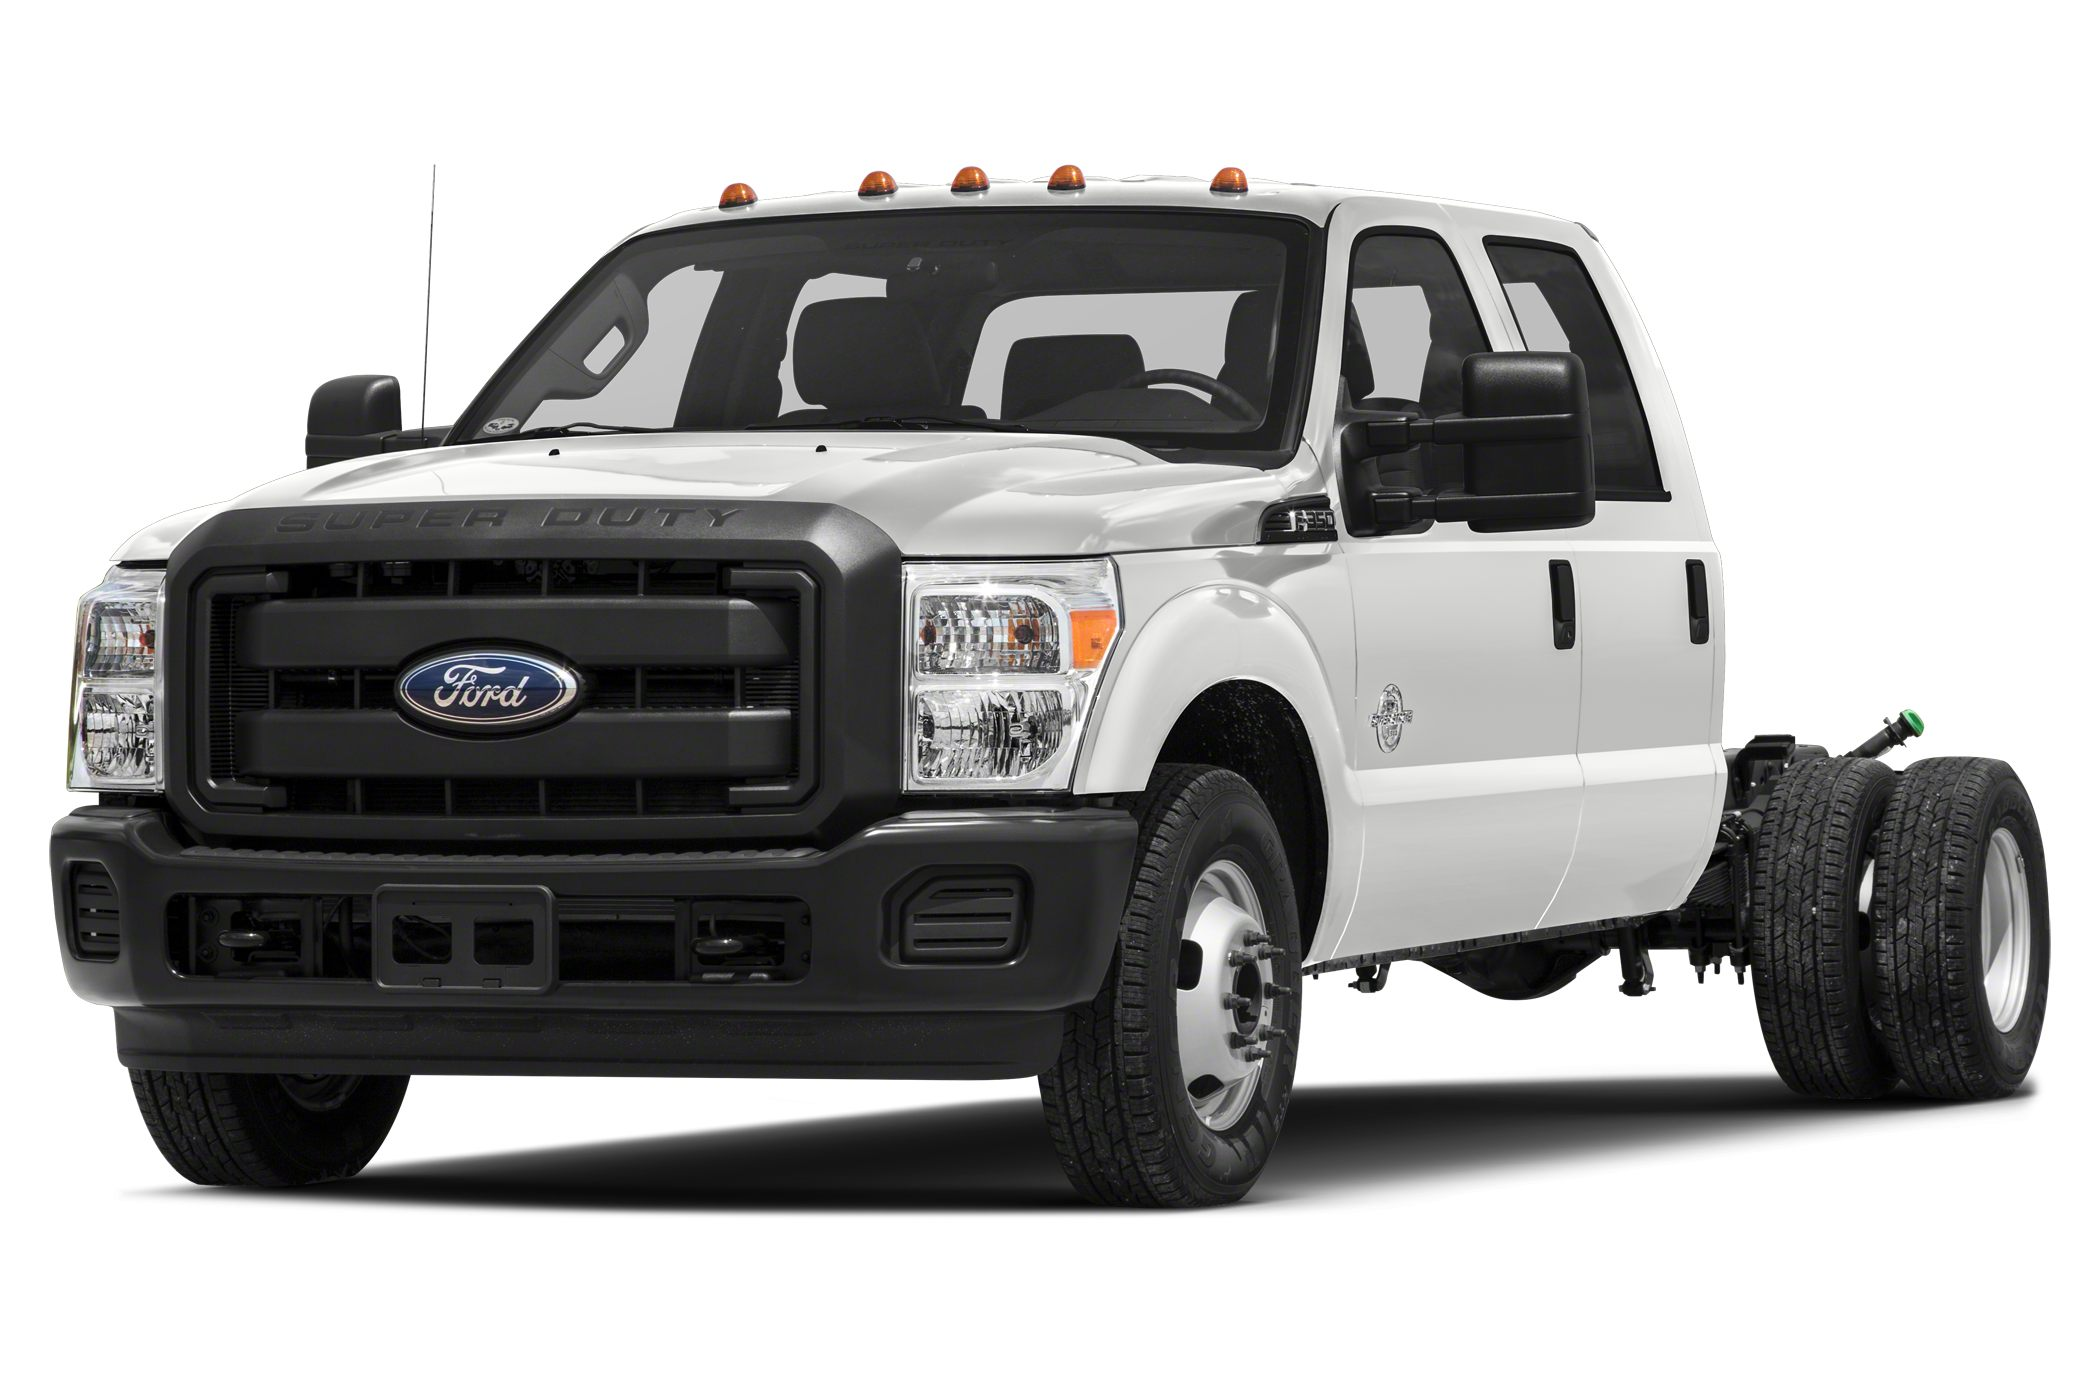 2015 Ford F-350 Chassis Cab  Call us today This is the Best Deal on the Internet Miles 73817C